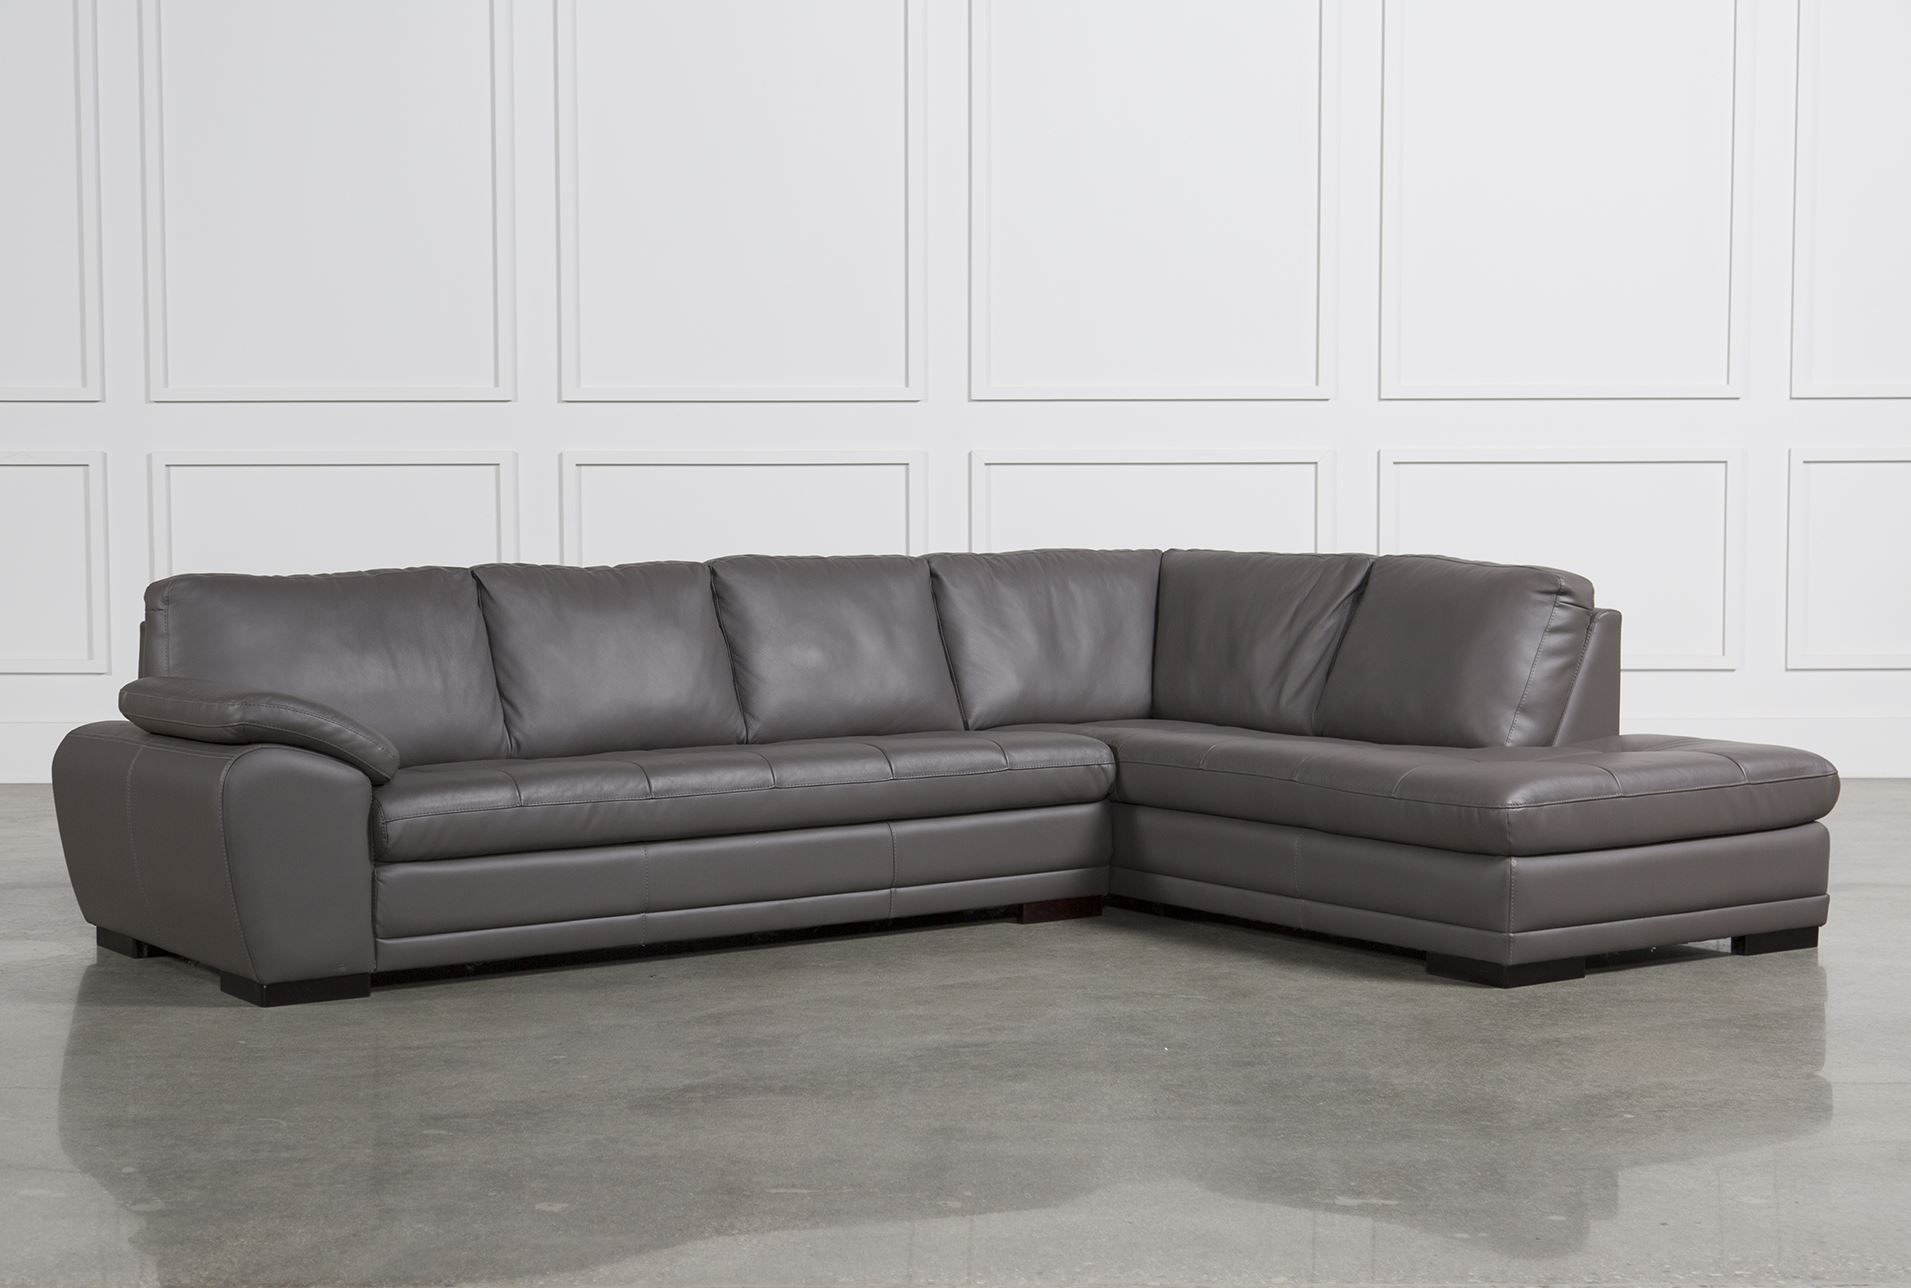 12 excellent sofa sectionals photo ideas 8 tips for choosing ...